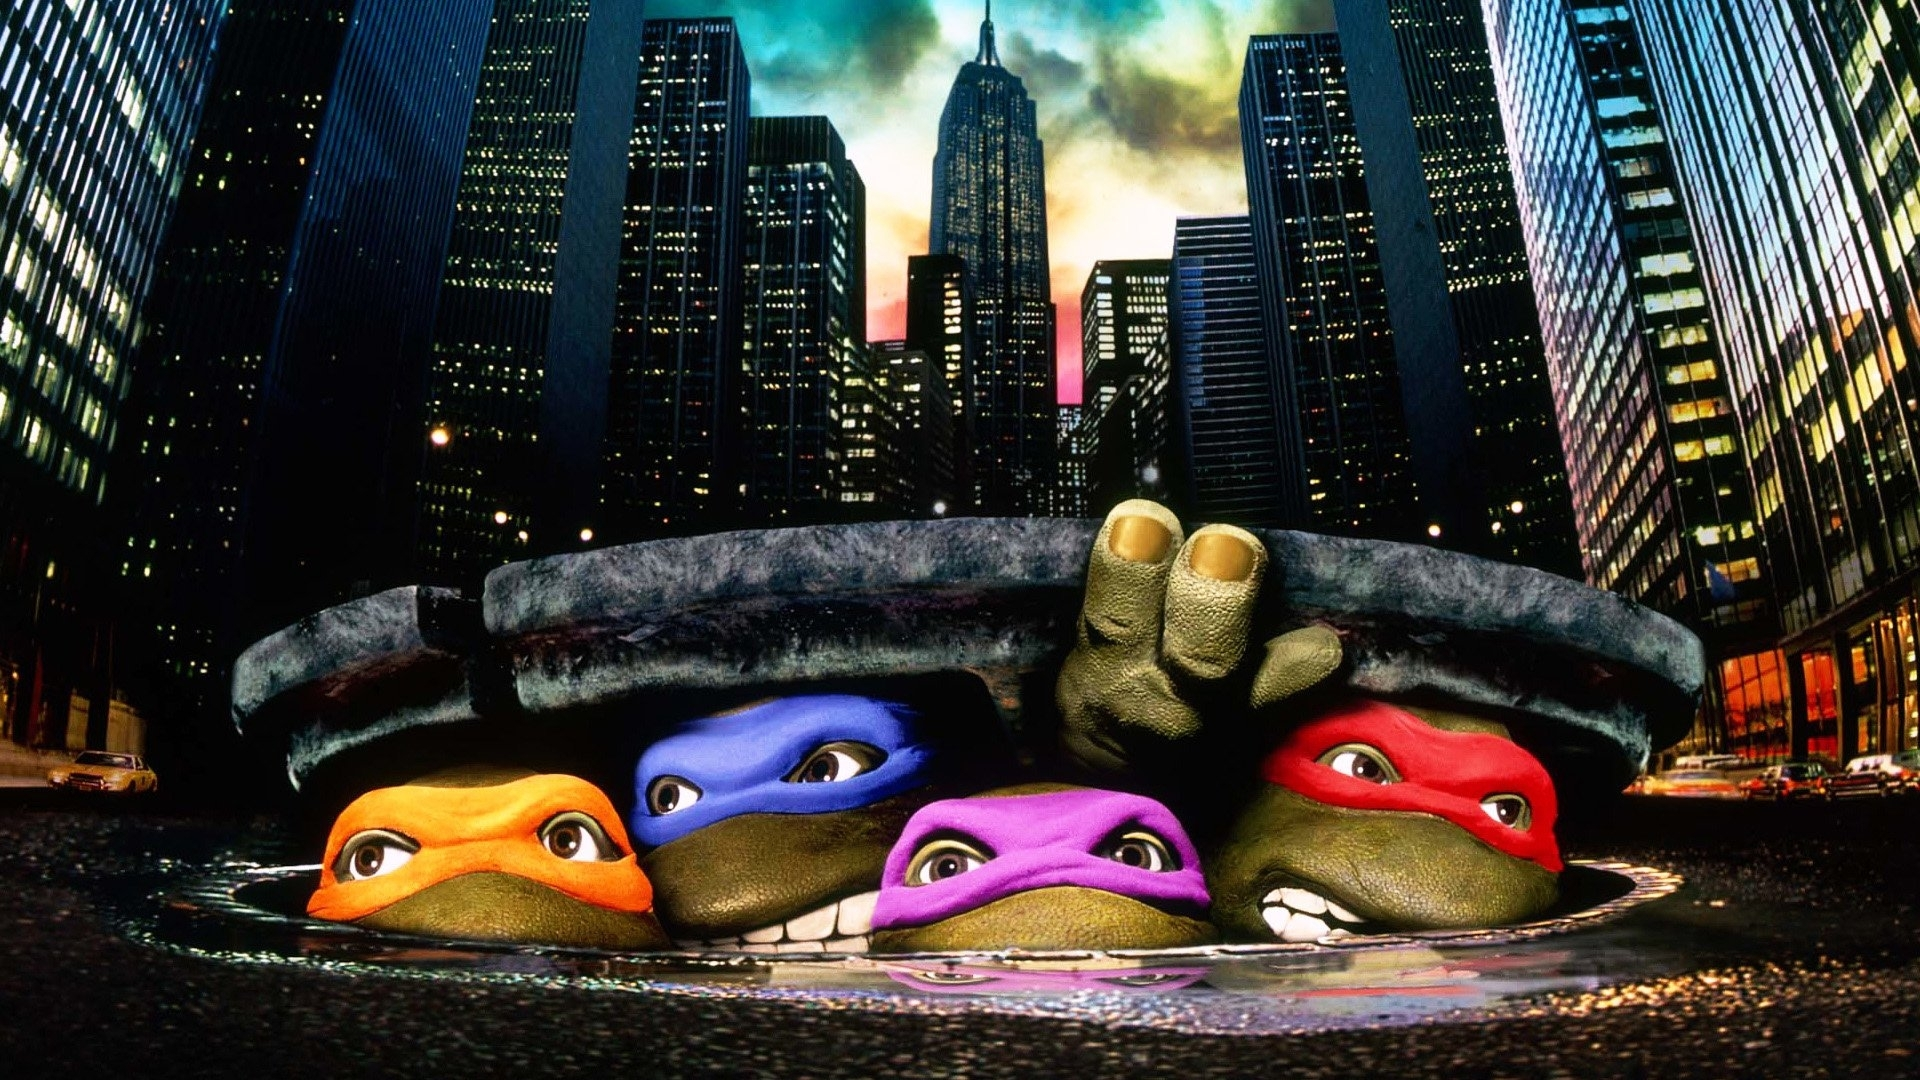 2 teenage mutant ninja turtles (1990) hd wallpapers | background